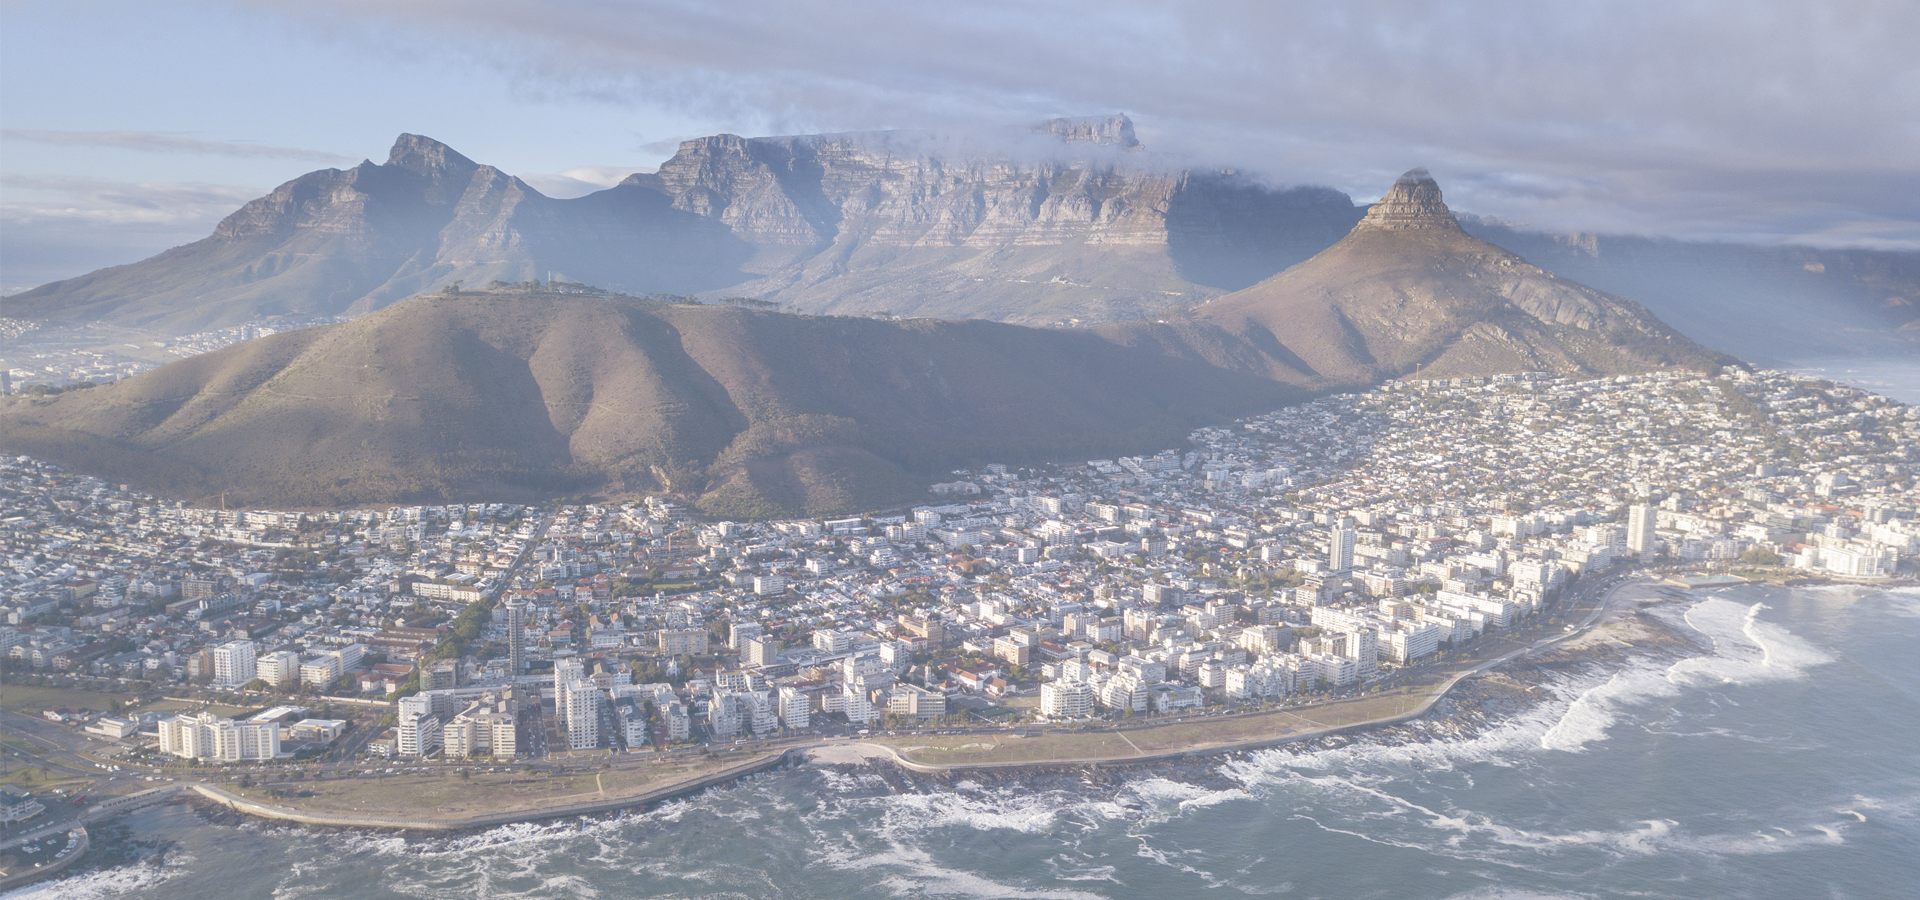 Peer-to-peer advisory in Cape Town, Western Cape, South Africa